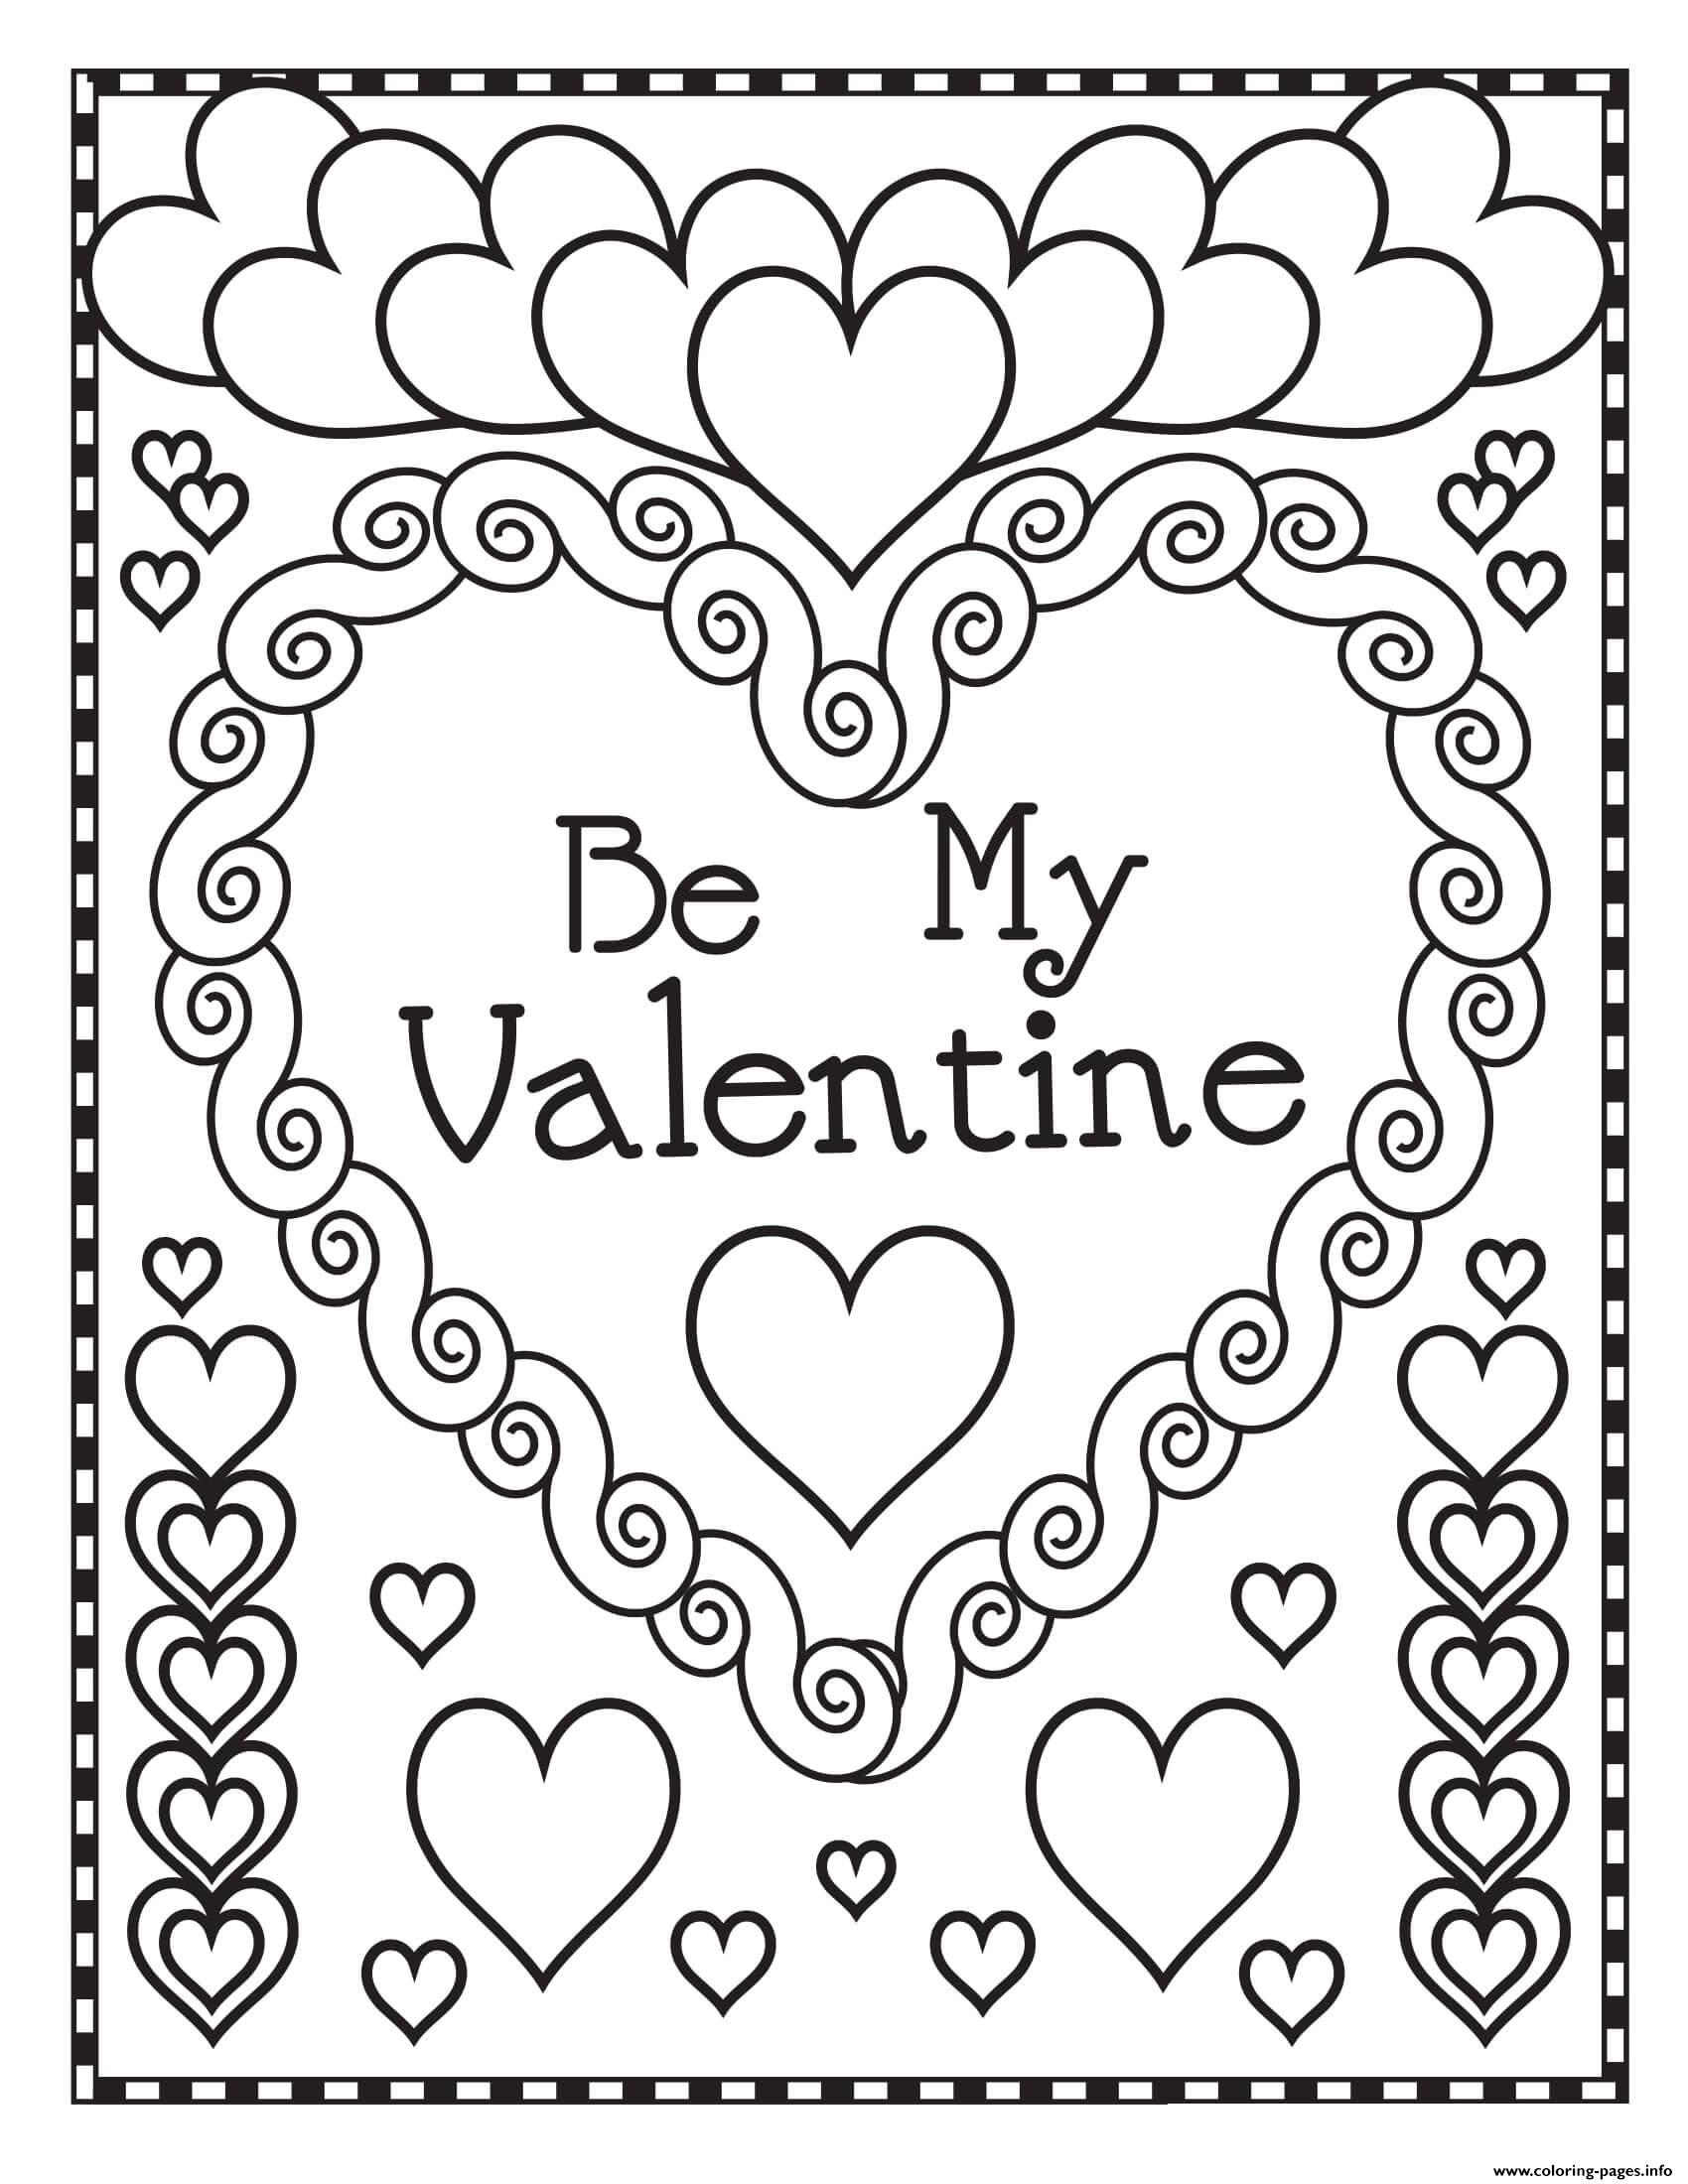 Mandala Heart Be My Valentine Coloring Pages Printable